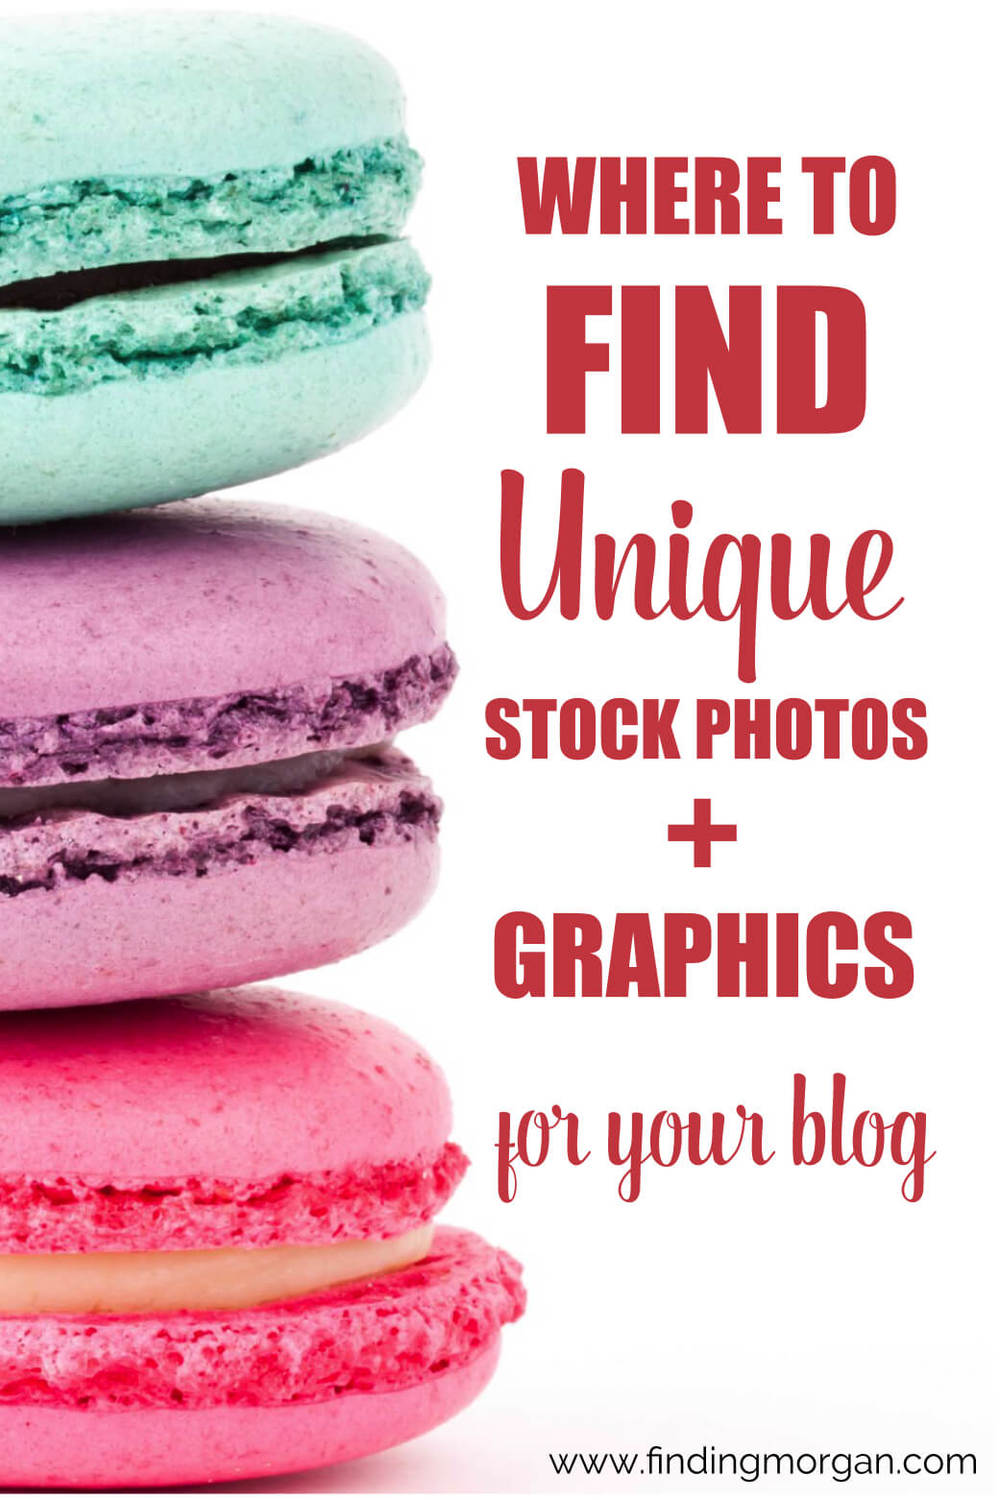 where-to-find-stock-photos